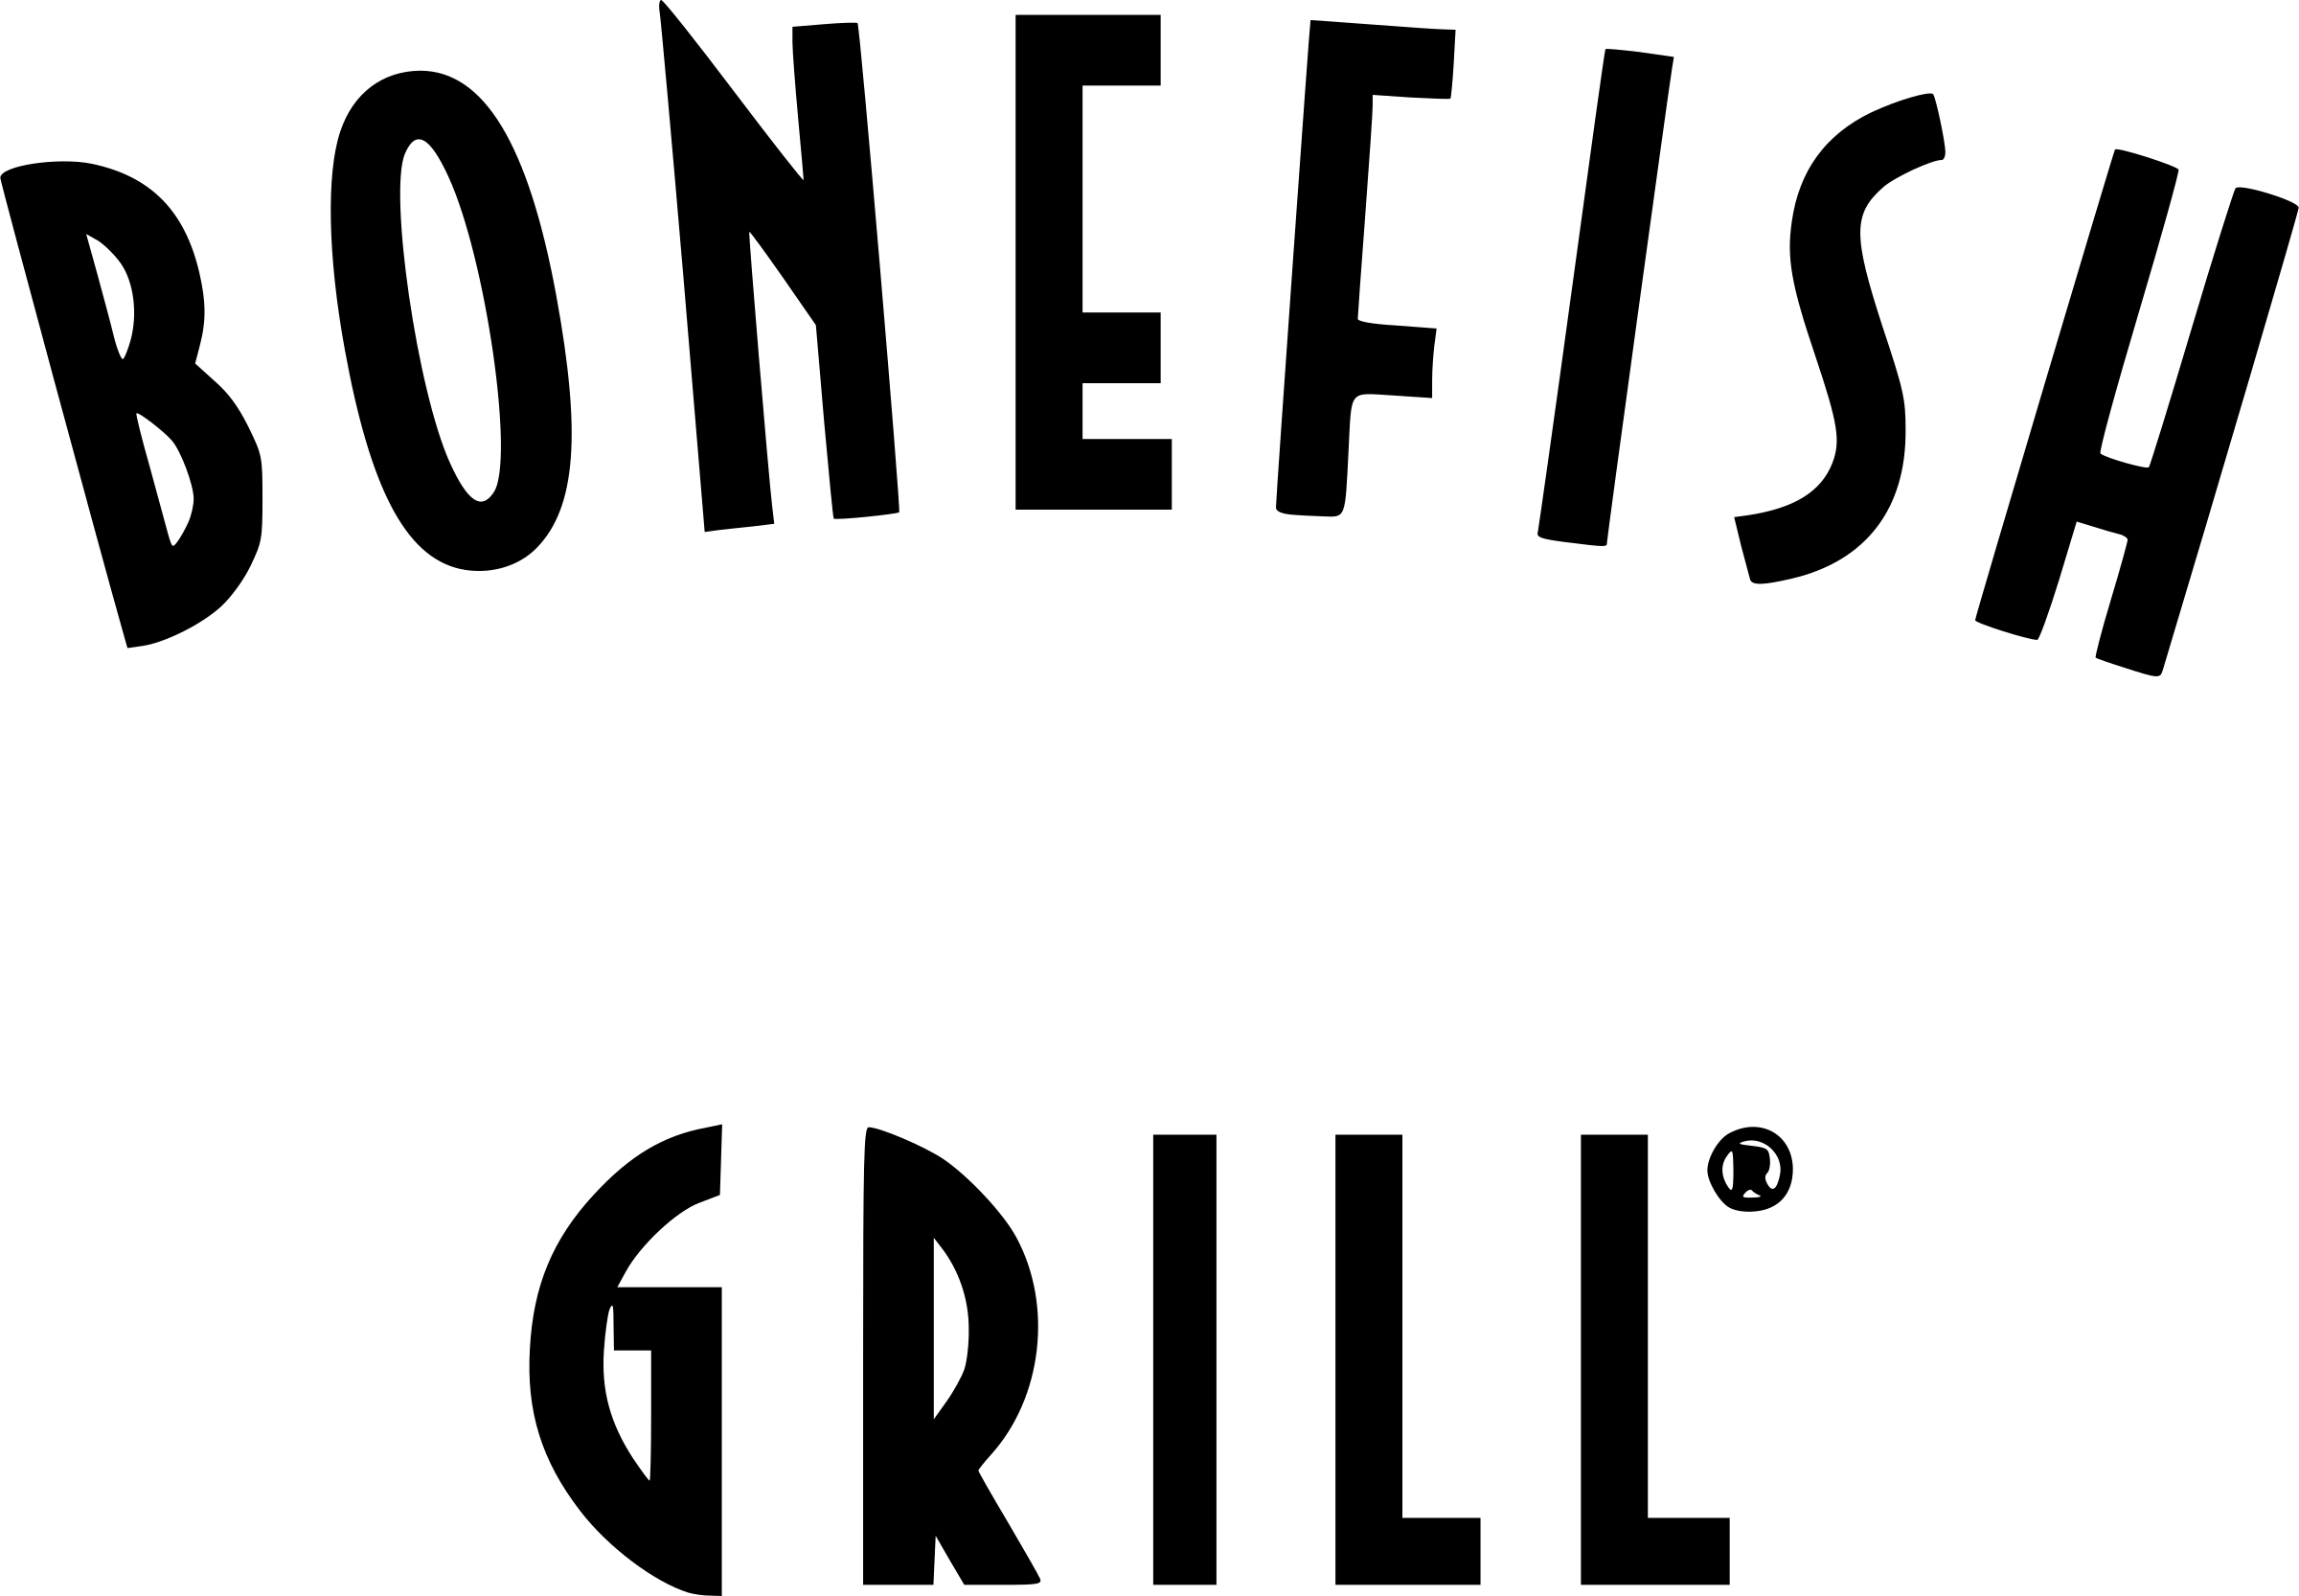 Bonefish grill logo clipart banner library download Bonefish Logo - LogoDix banner library download